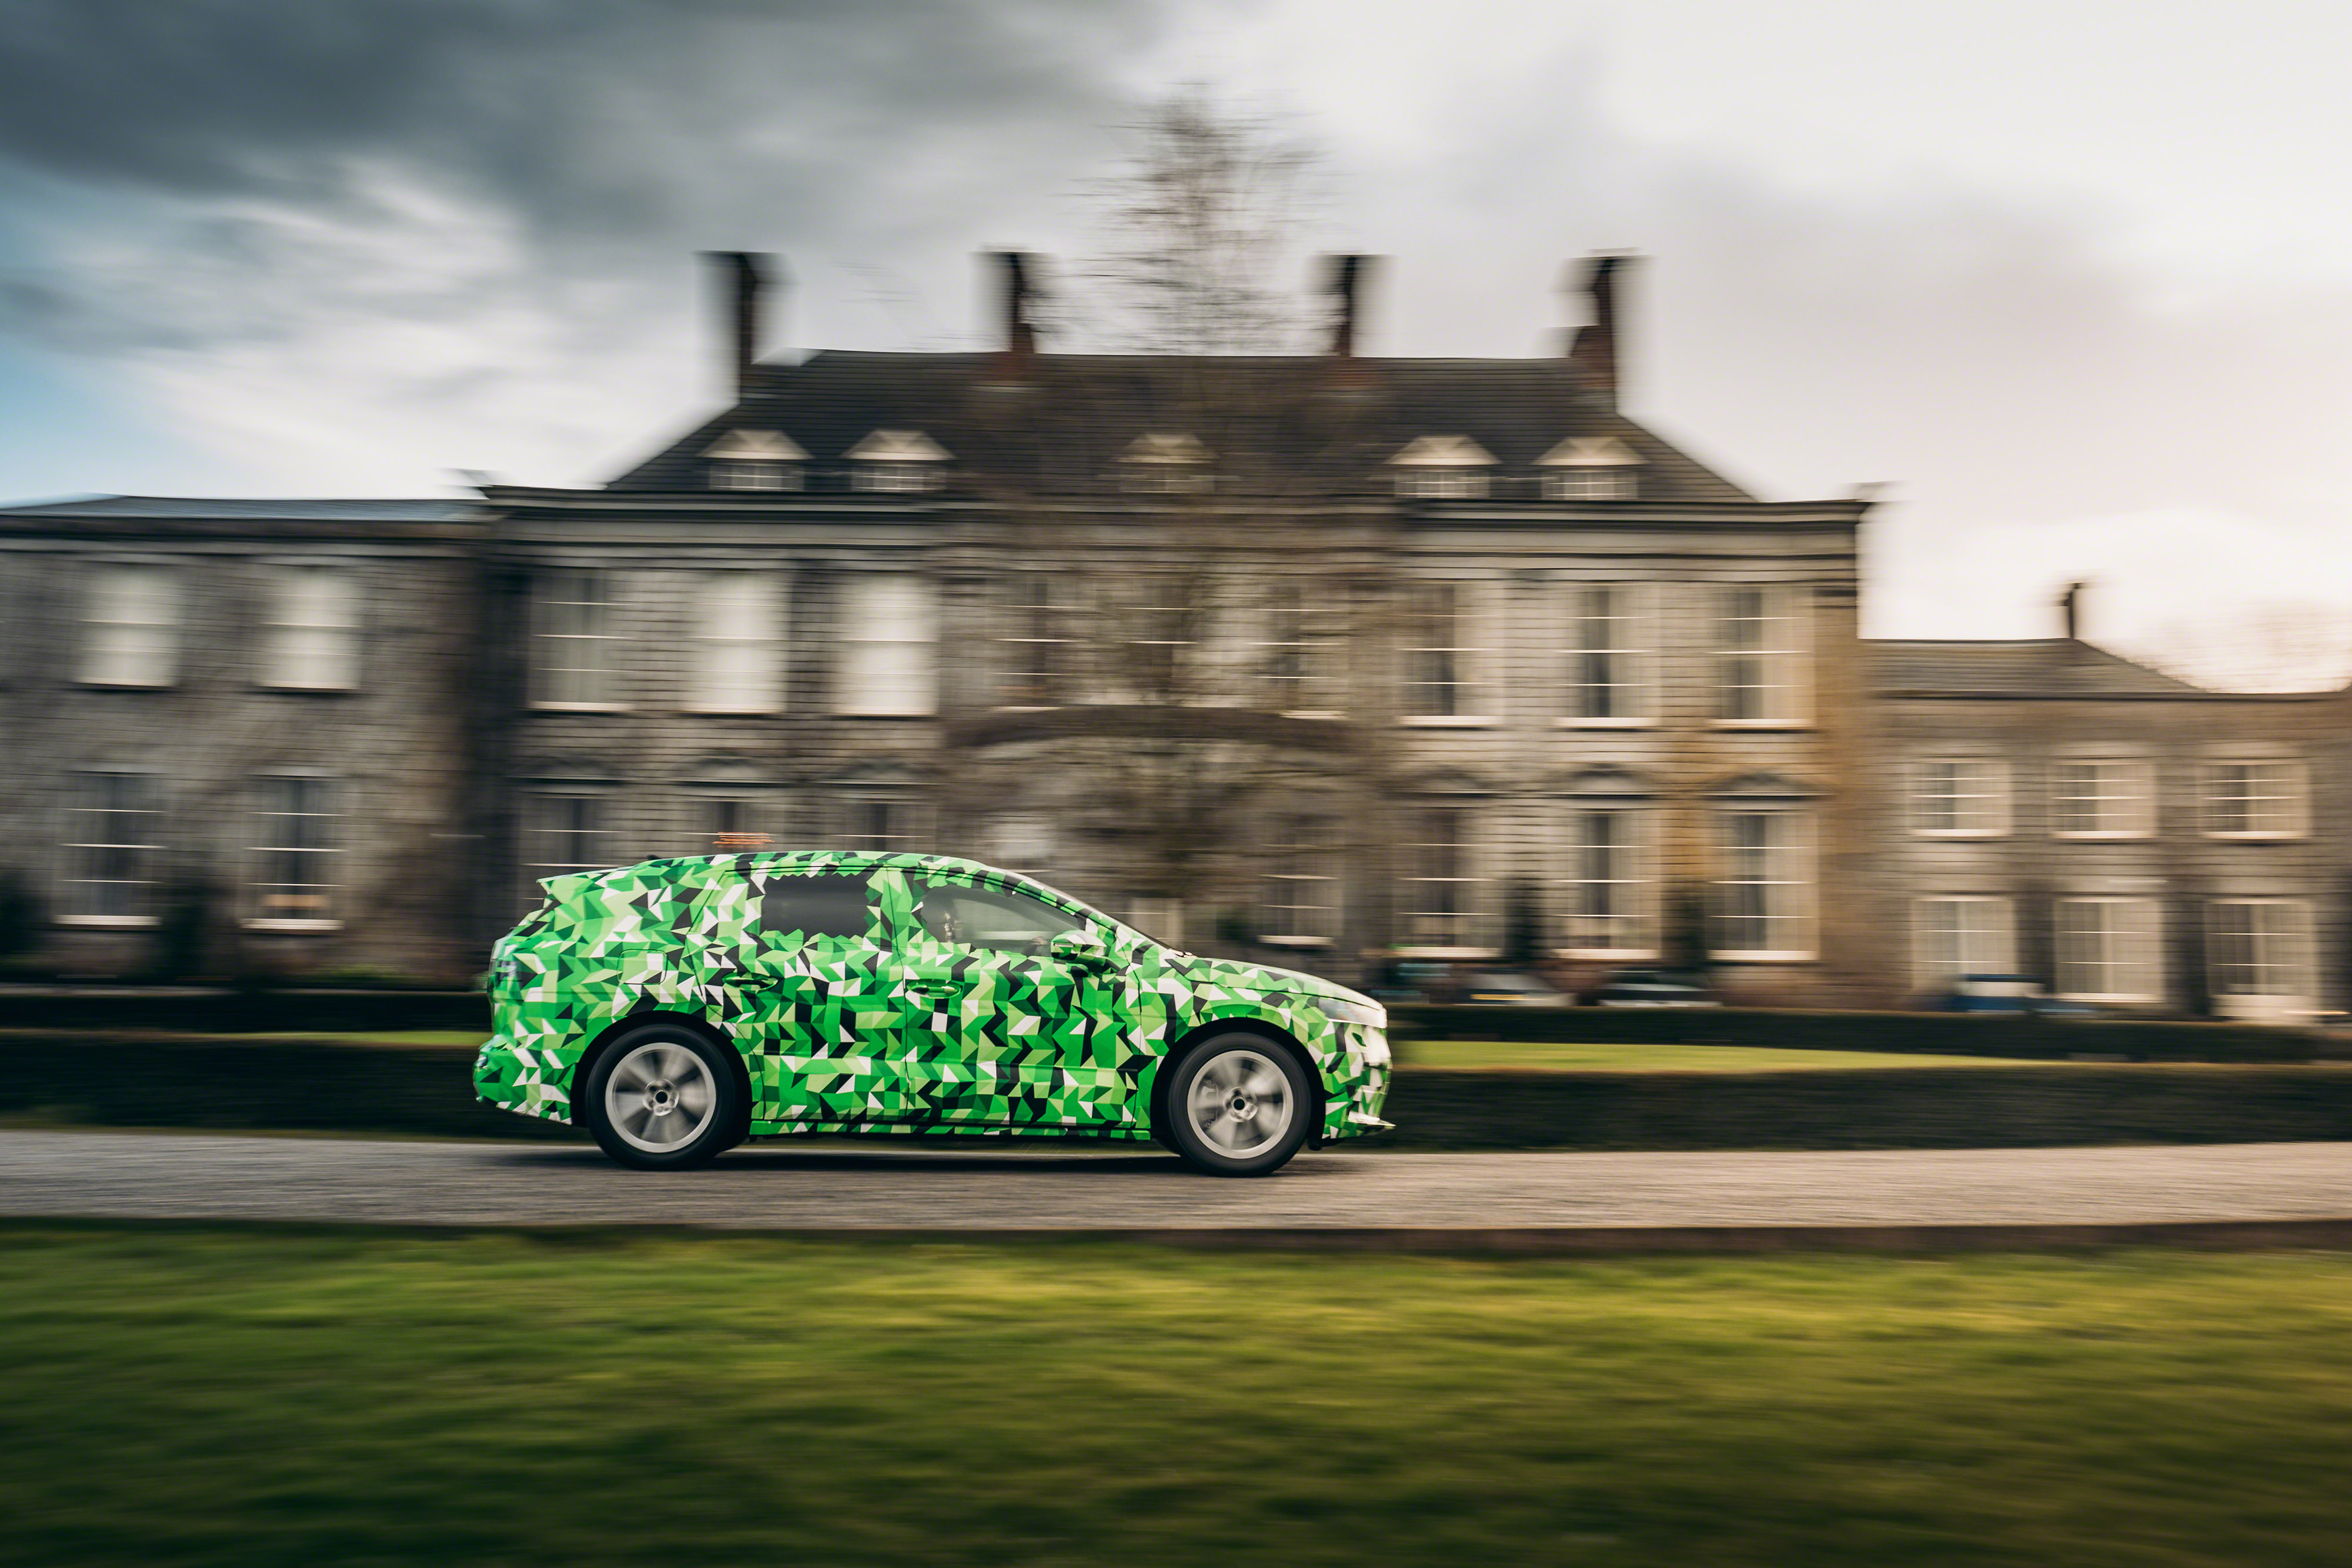 SKODA test mules: The art of camouflage - Image 4